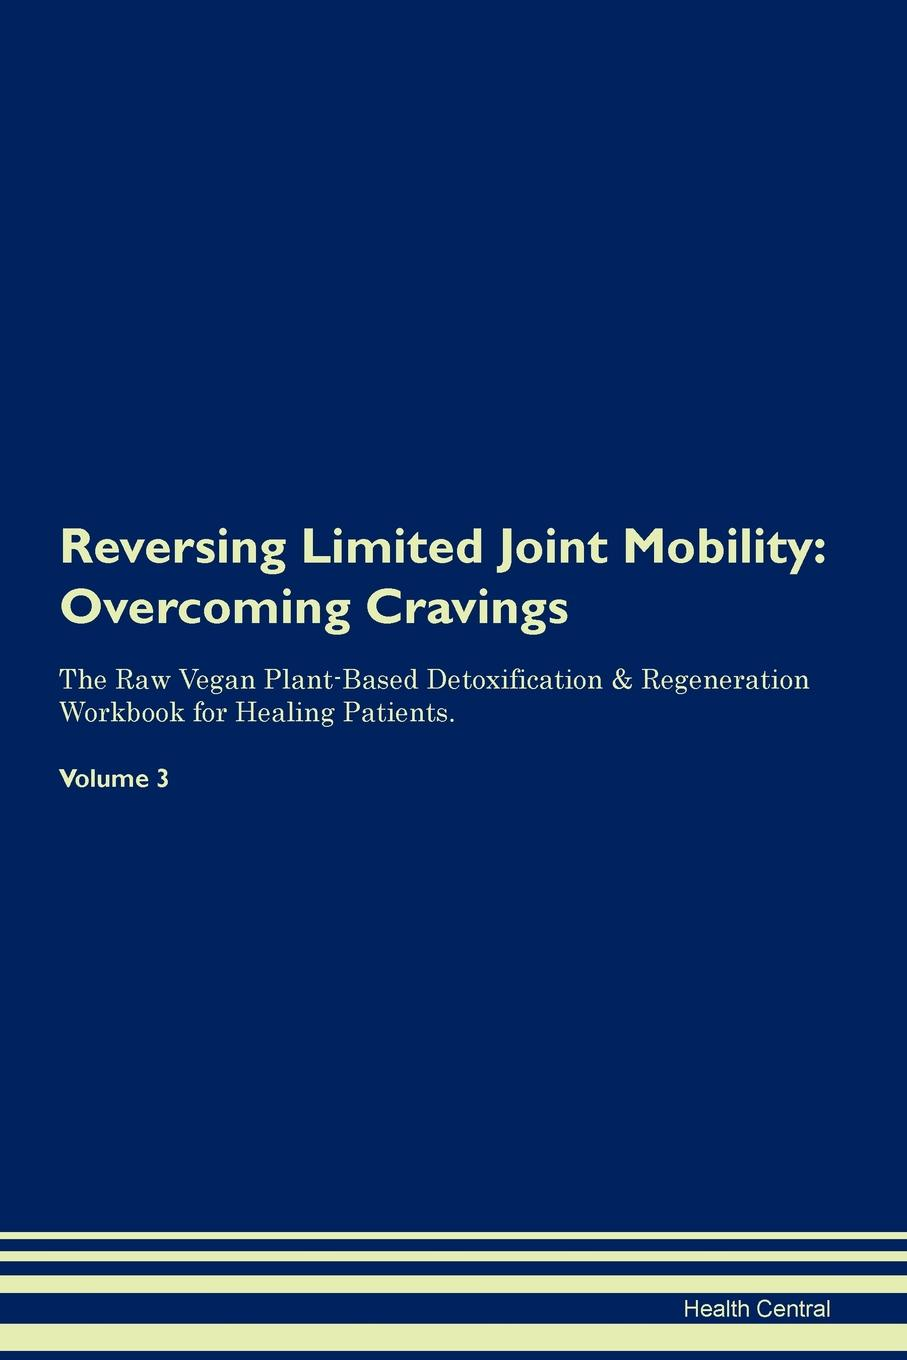 Health Central Reversing Limited Joint Mobility. Overcoming Cravings The Raw Vegan Plant-Based Detoxification . Regeneration Workbook for Healing Patients. Volume 3 100% positive health glucosamine chondroitin sulfate high strength joint support pain relaxation